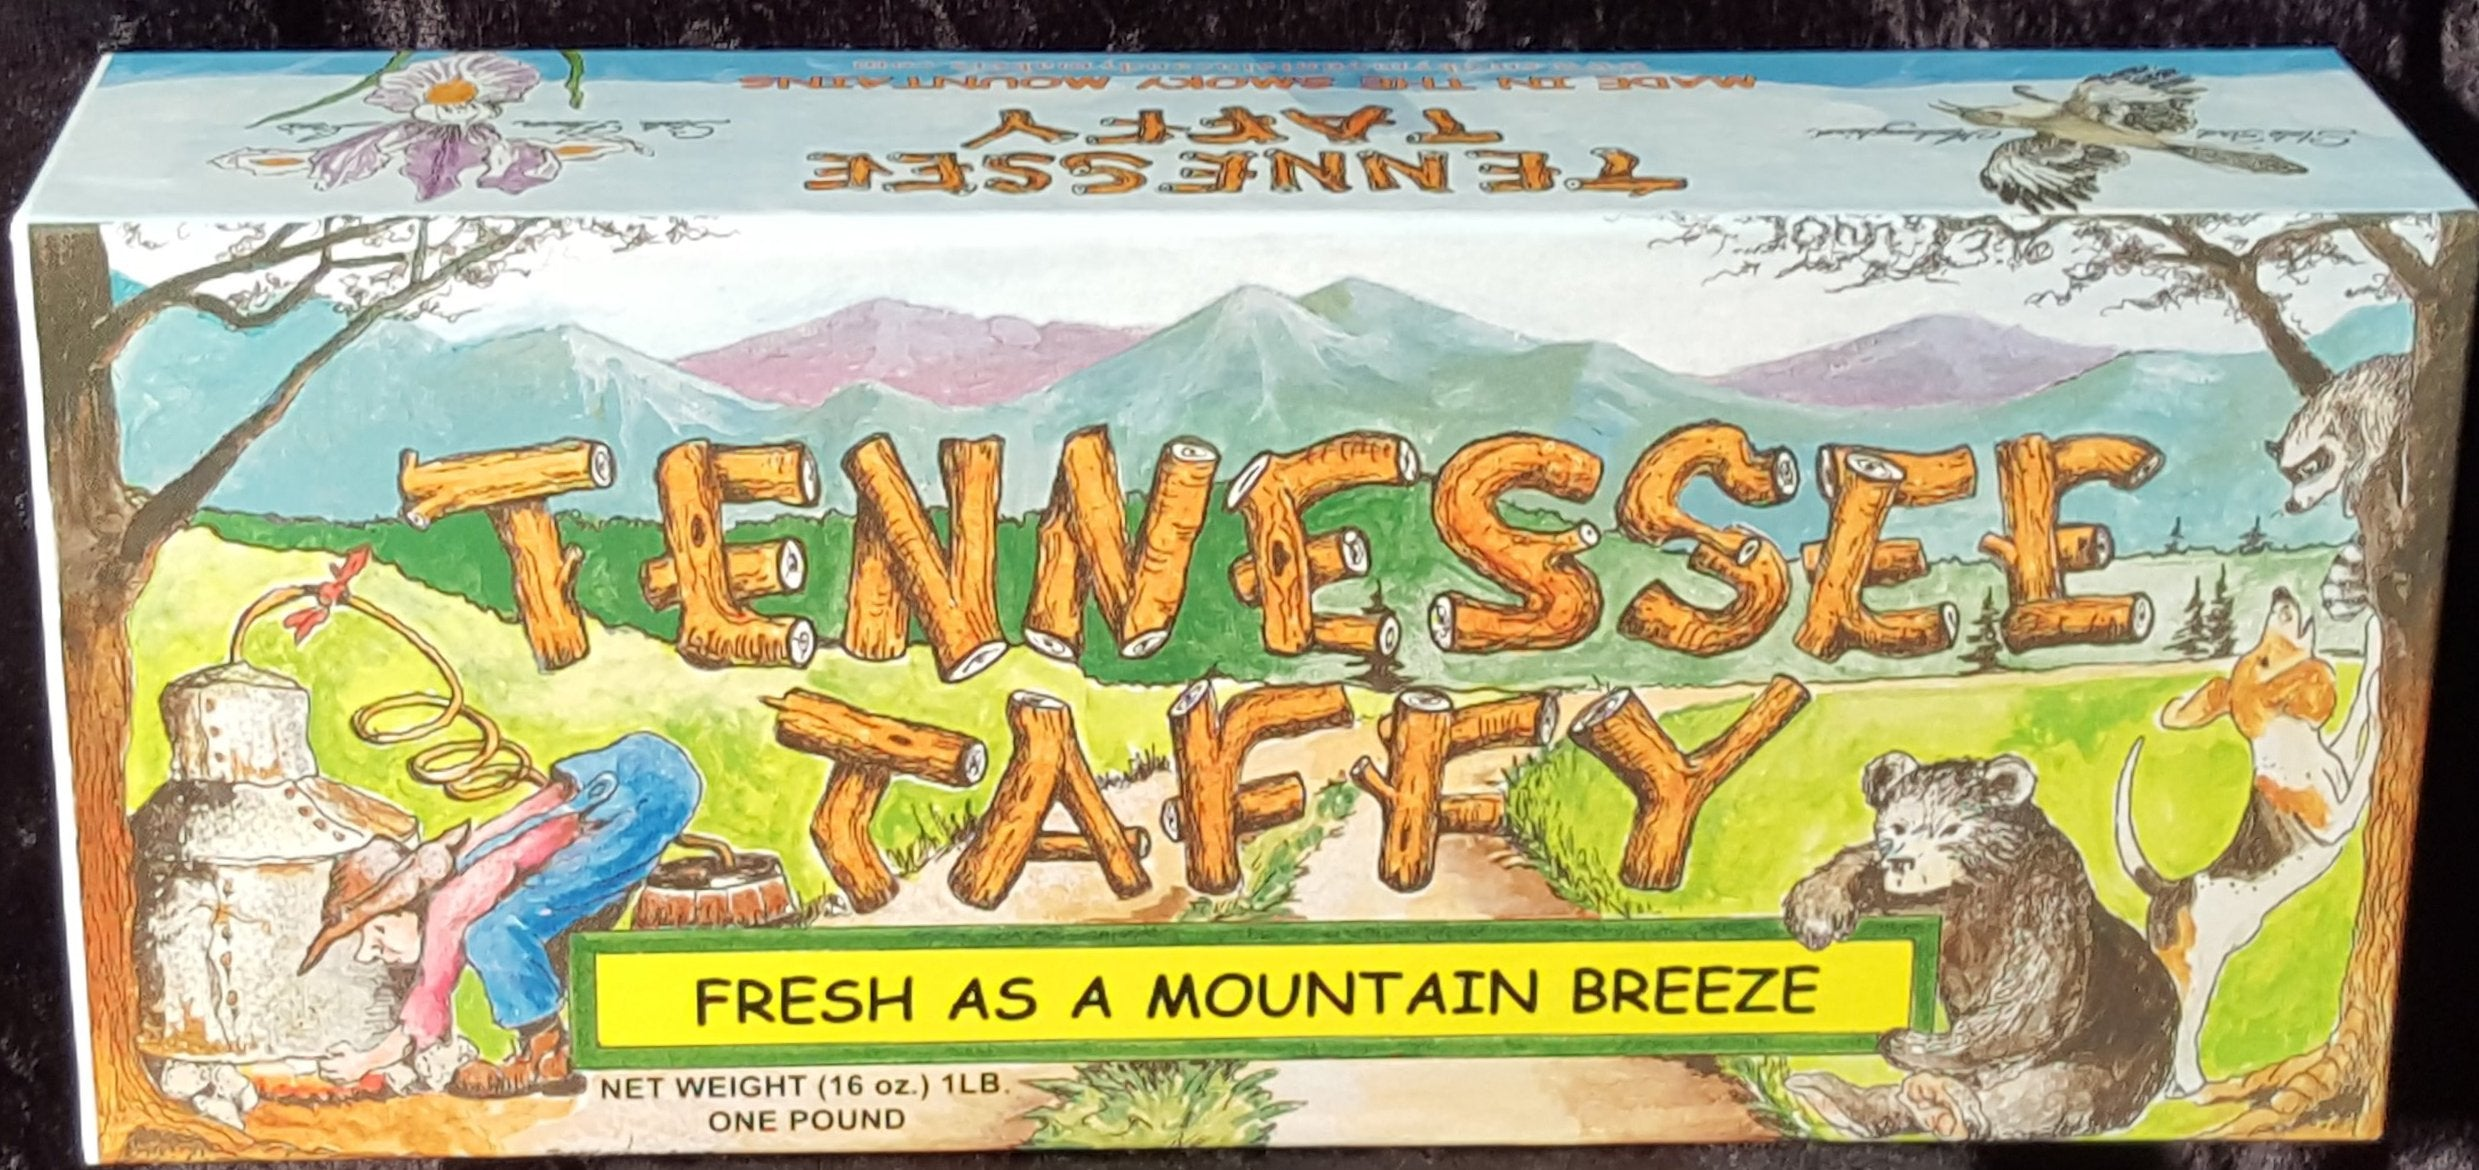 Southern Flavor- Tennessee Taffy